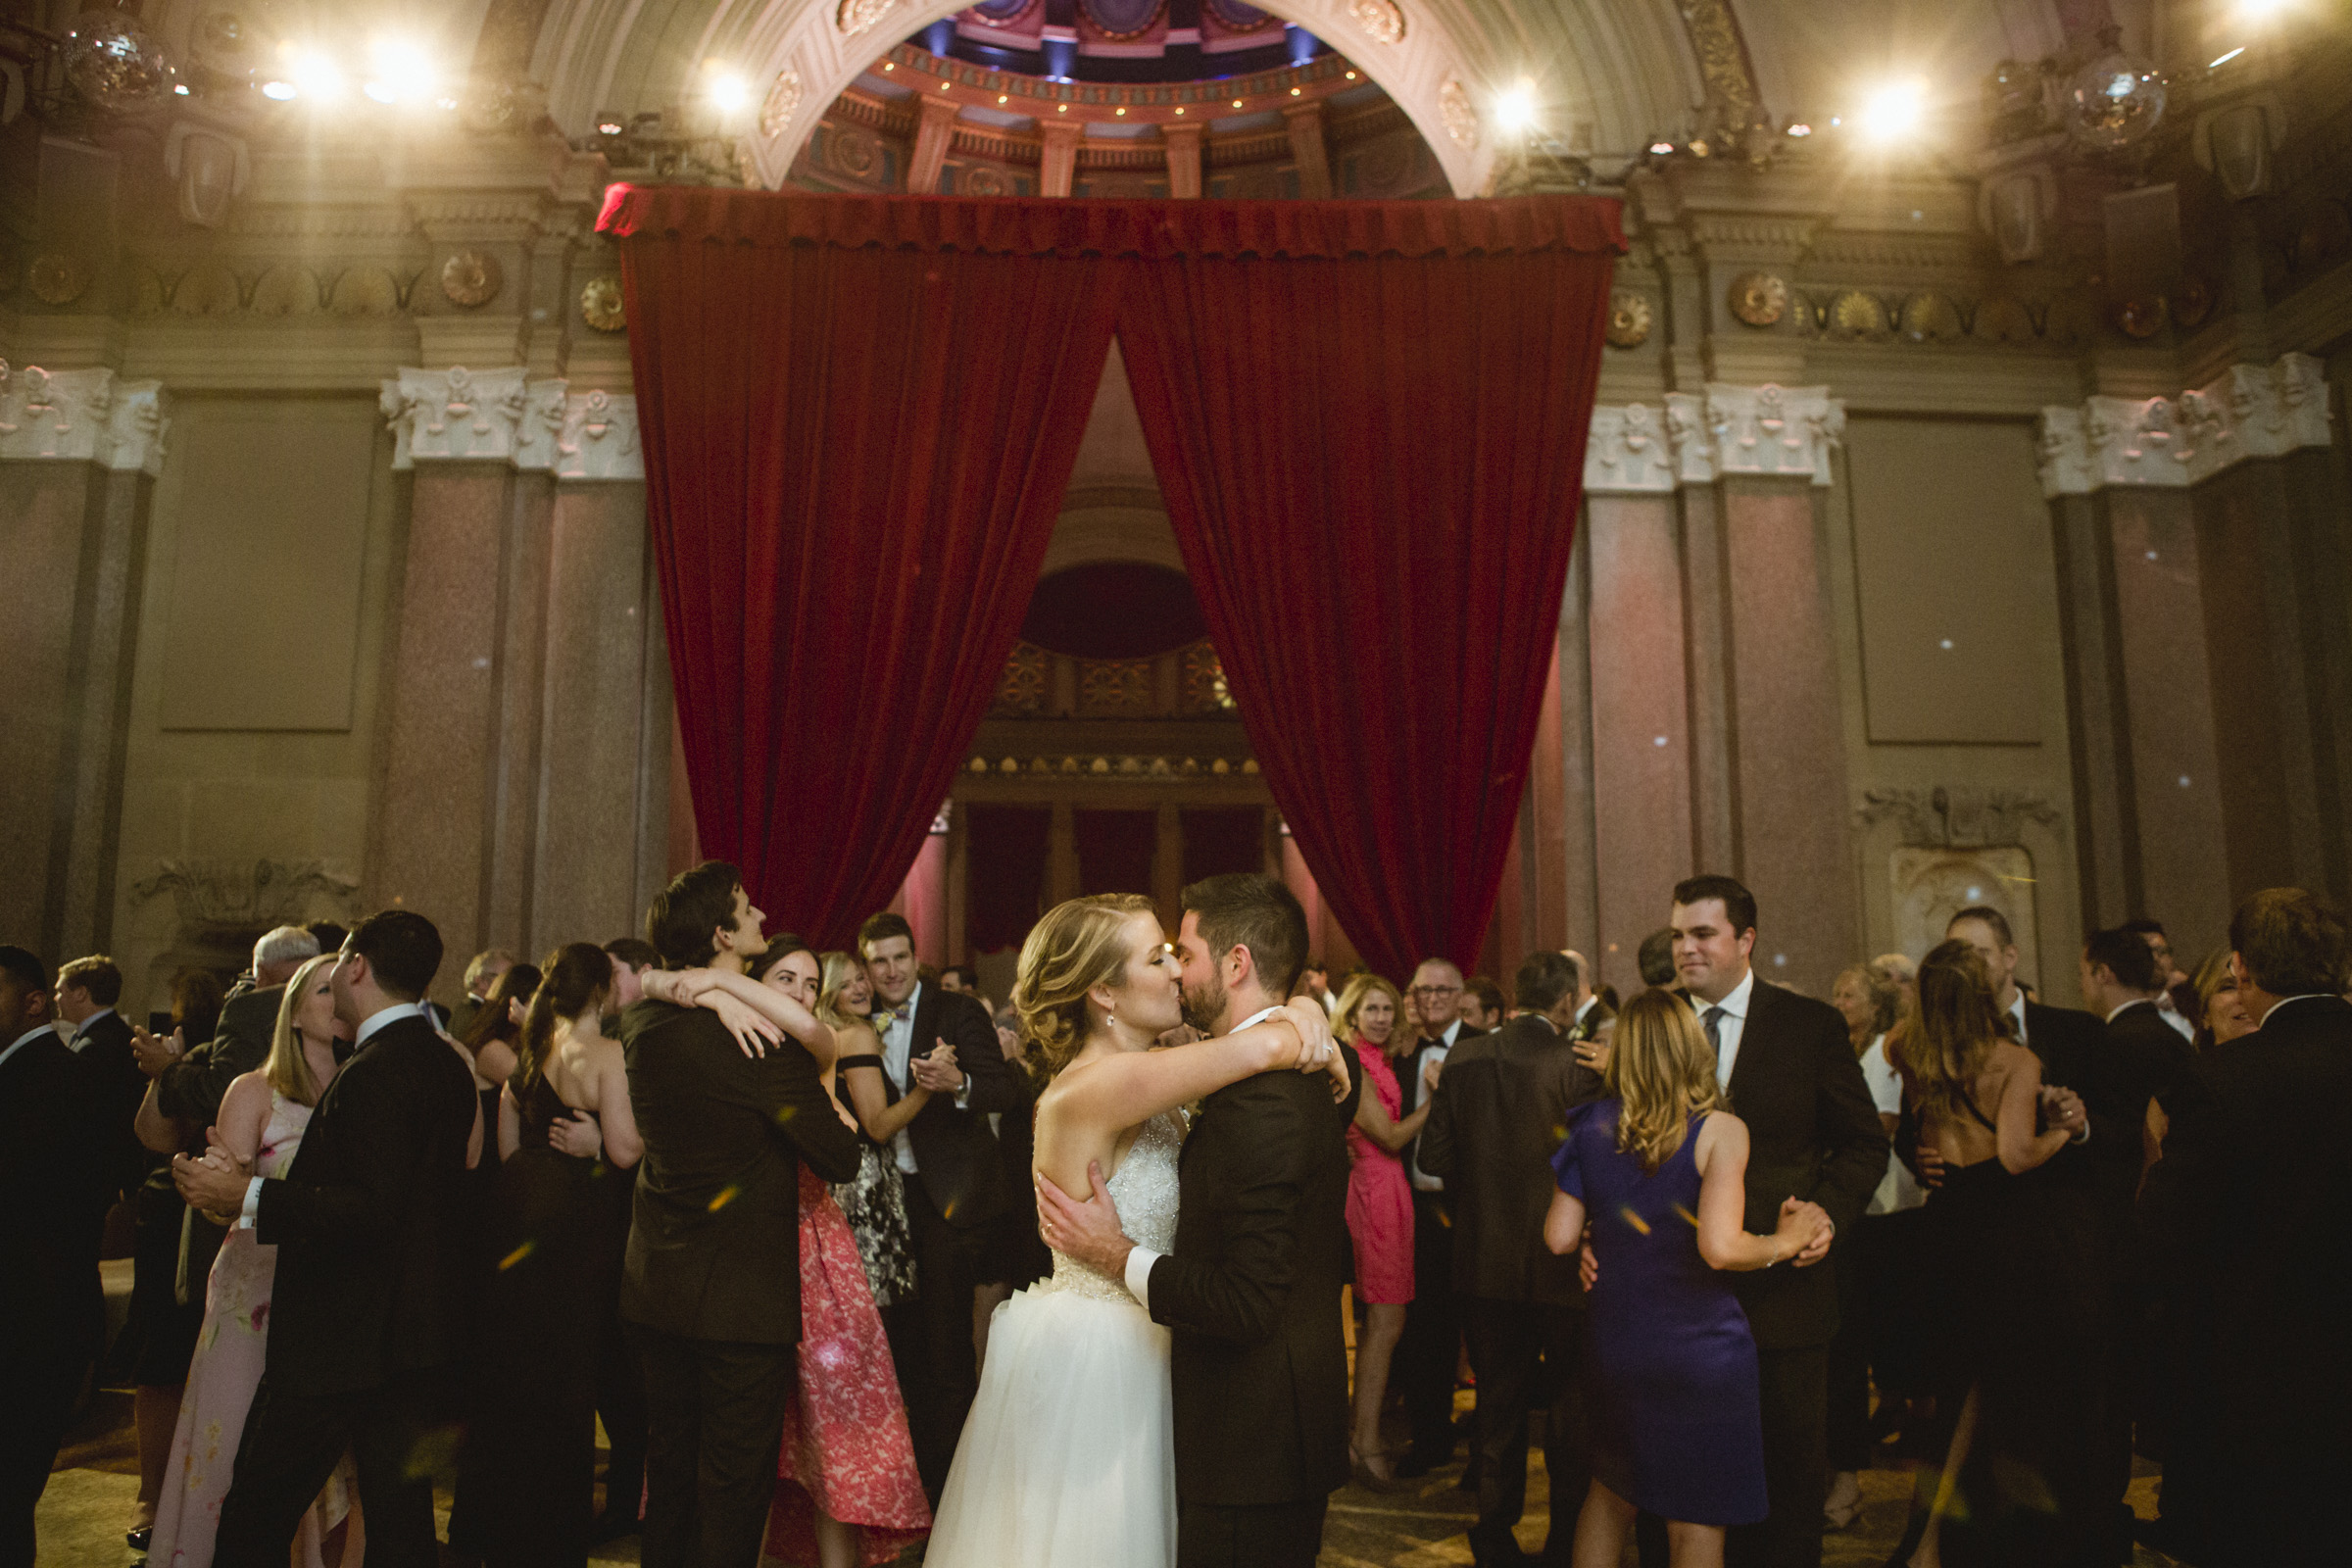 Amy Sims Photography | Bride and groom share a kiss on the dance floor surrounded by guests slow dancing together | Weylin wedding | Brooklyn Wedding photographer